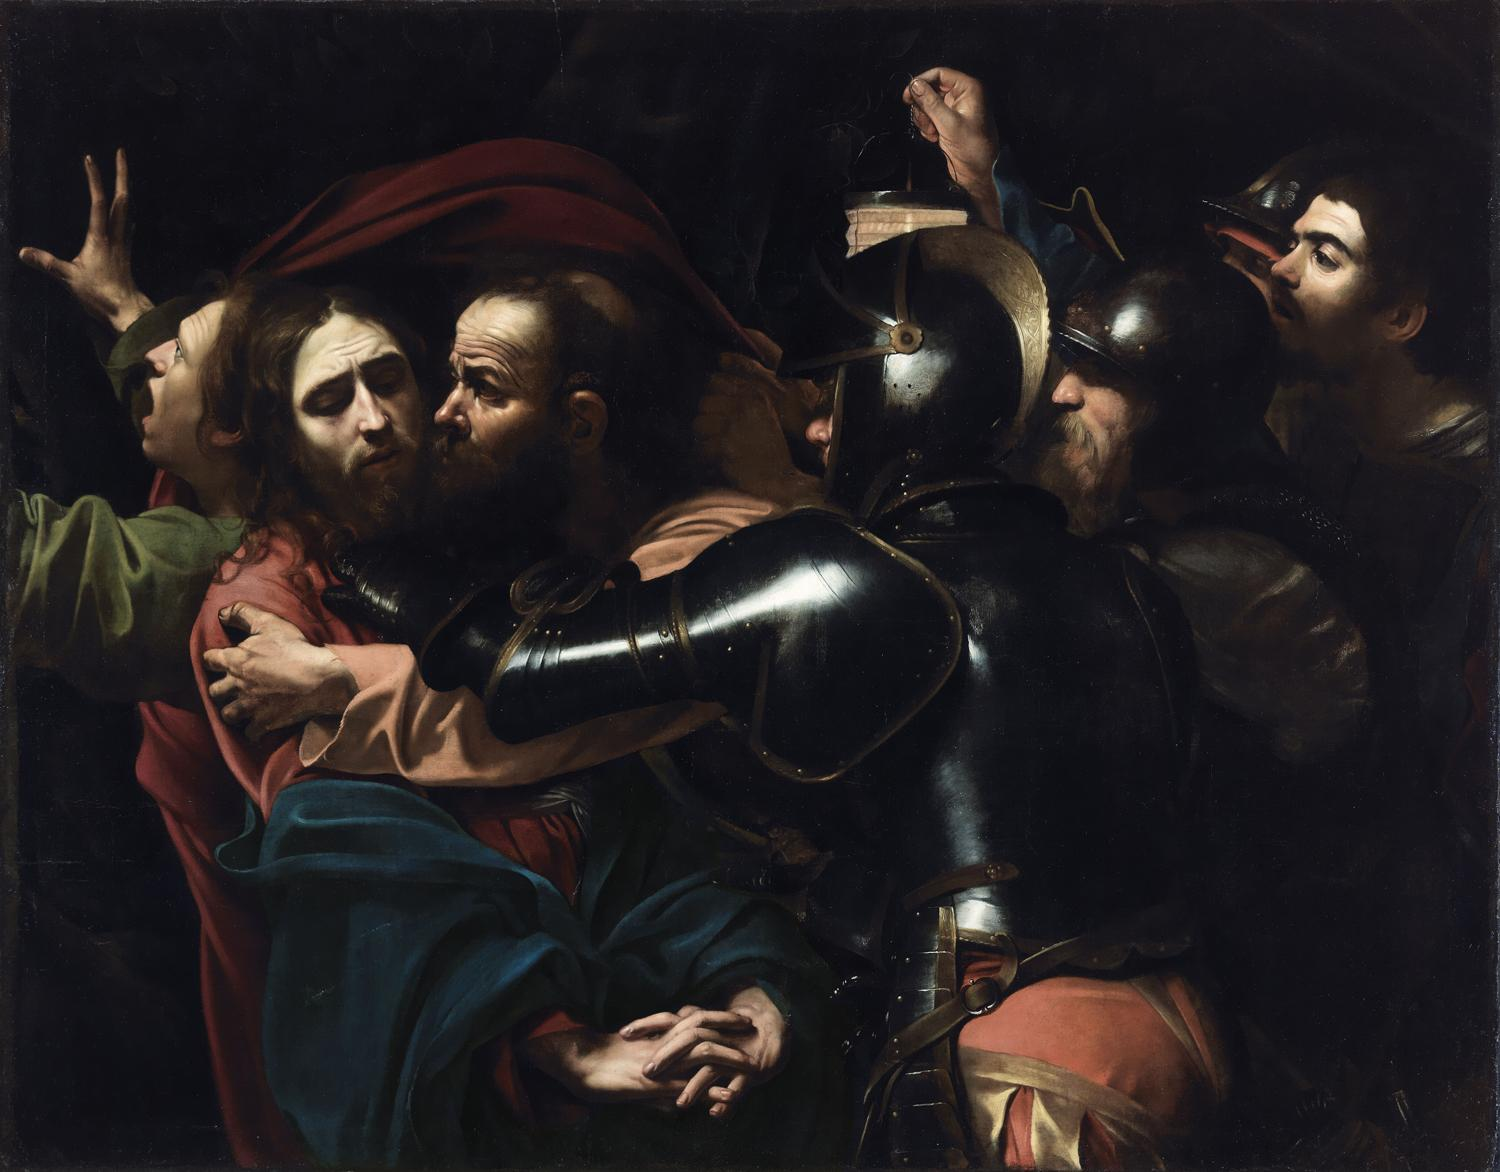 Taking of the Christ by Caravaggio